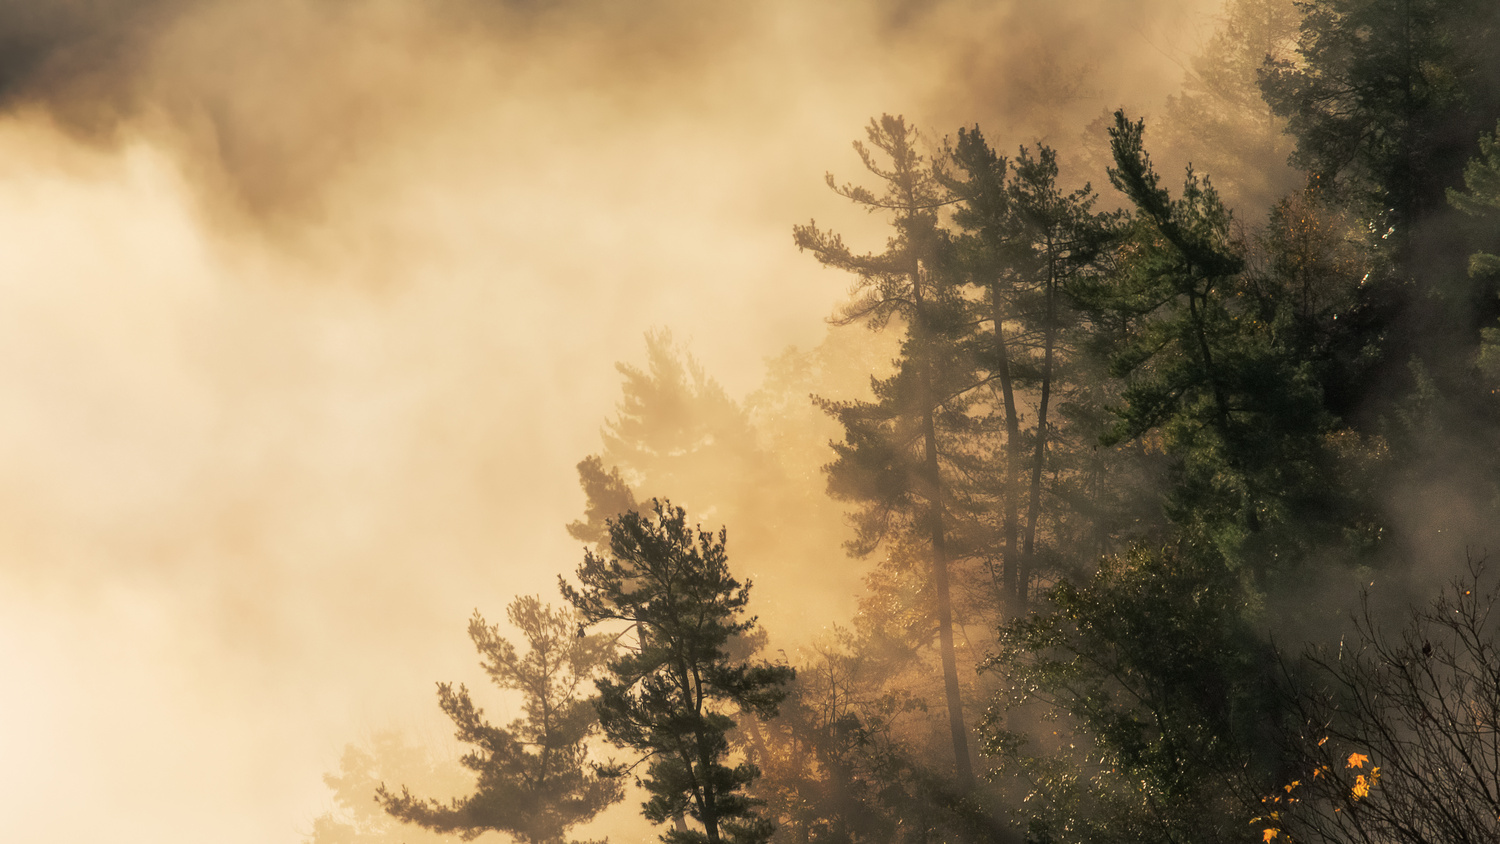 Foggy Pines by Mike English